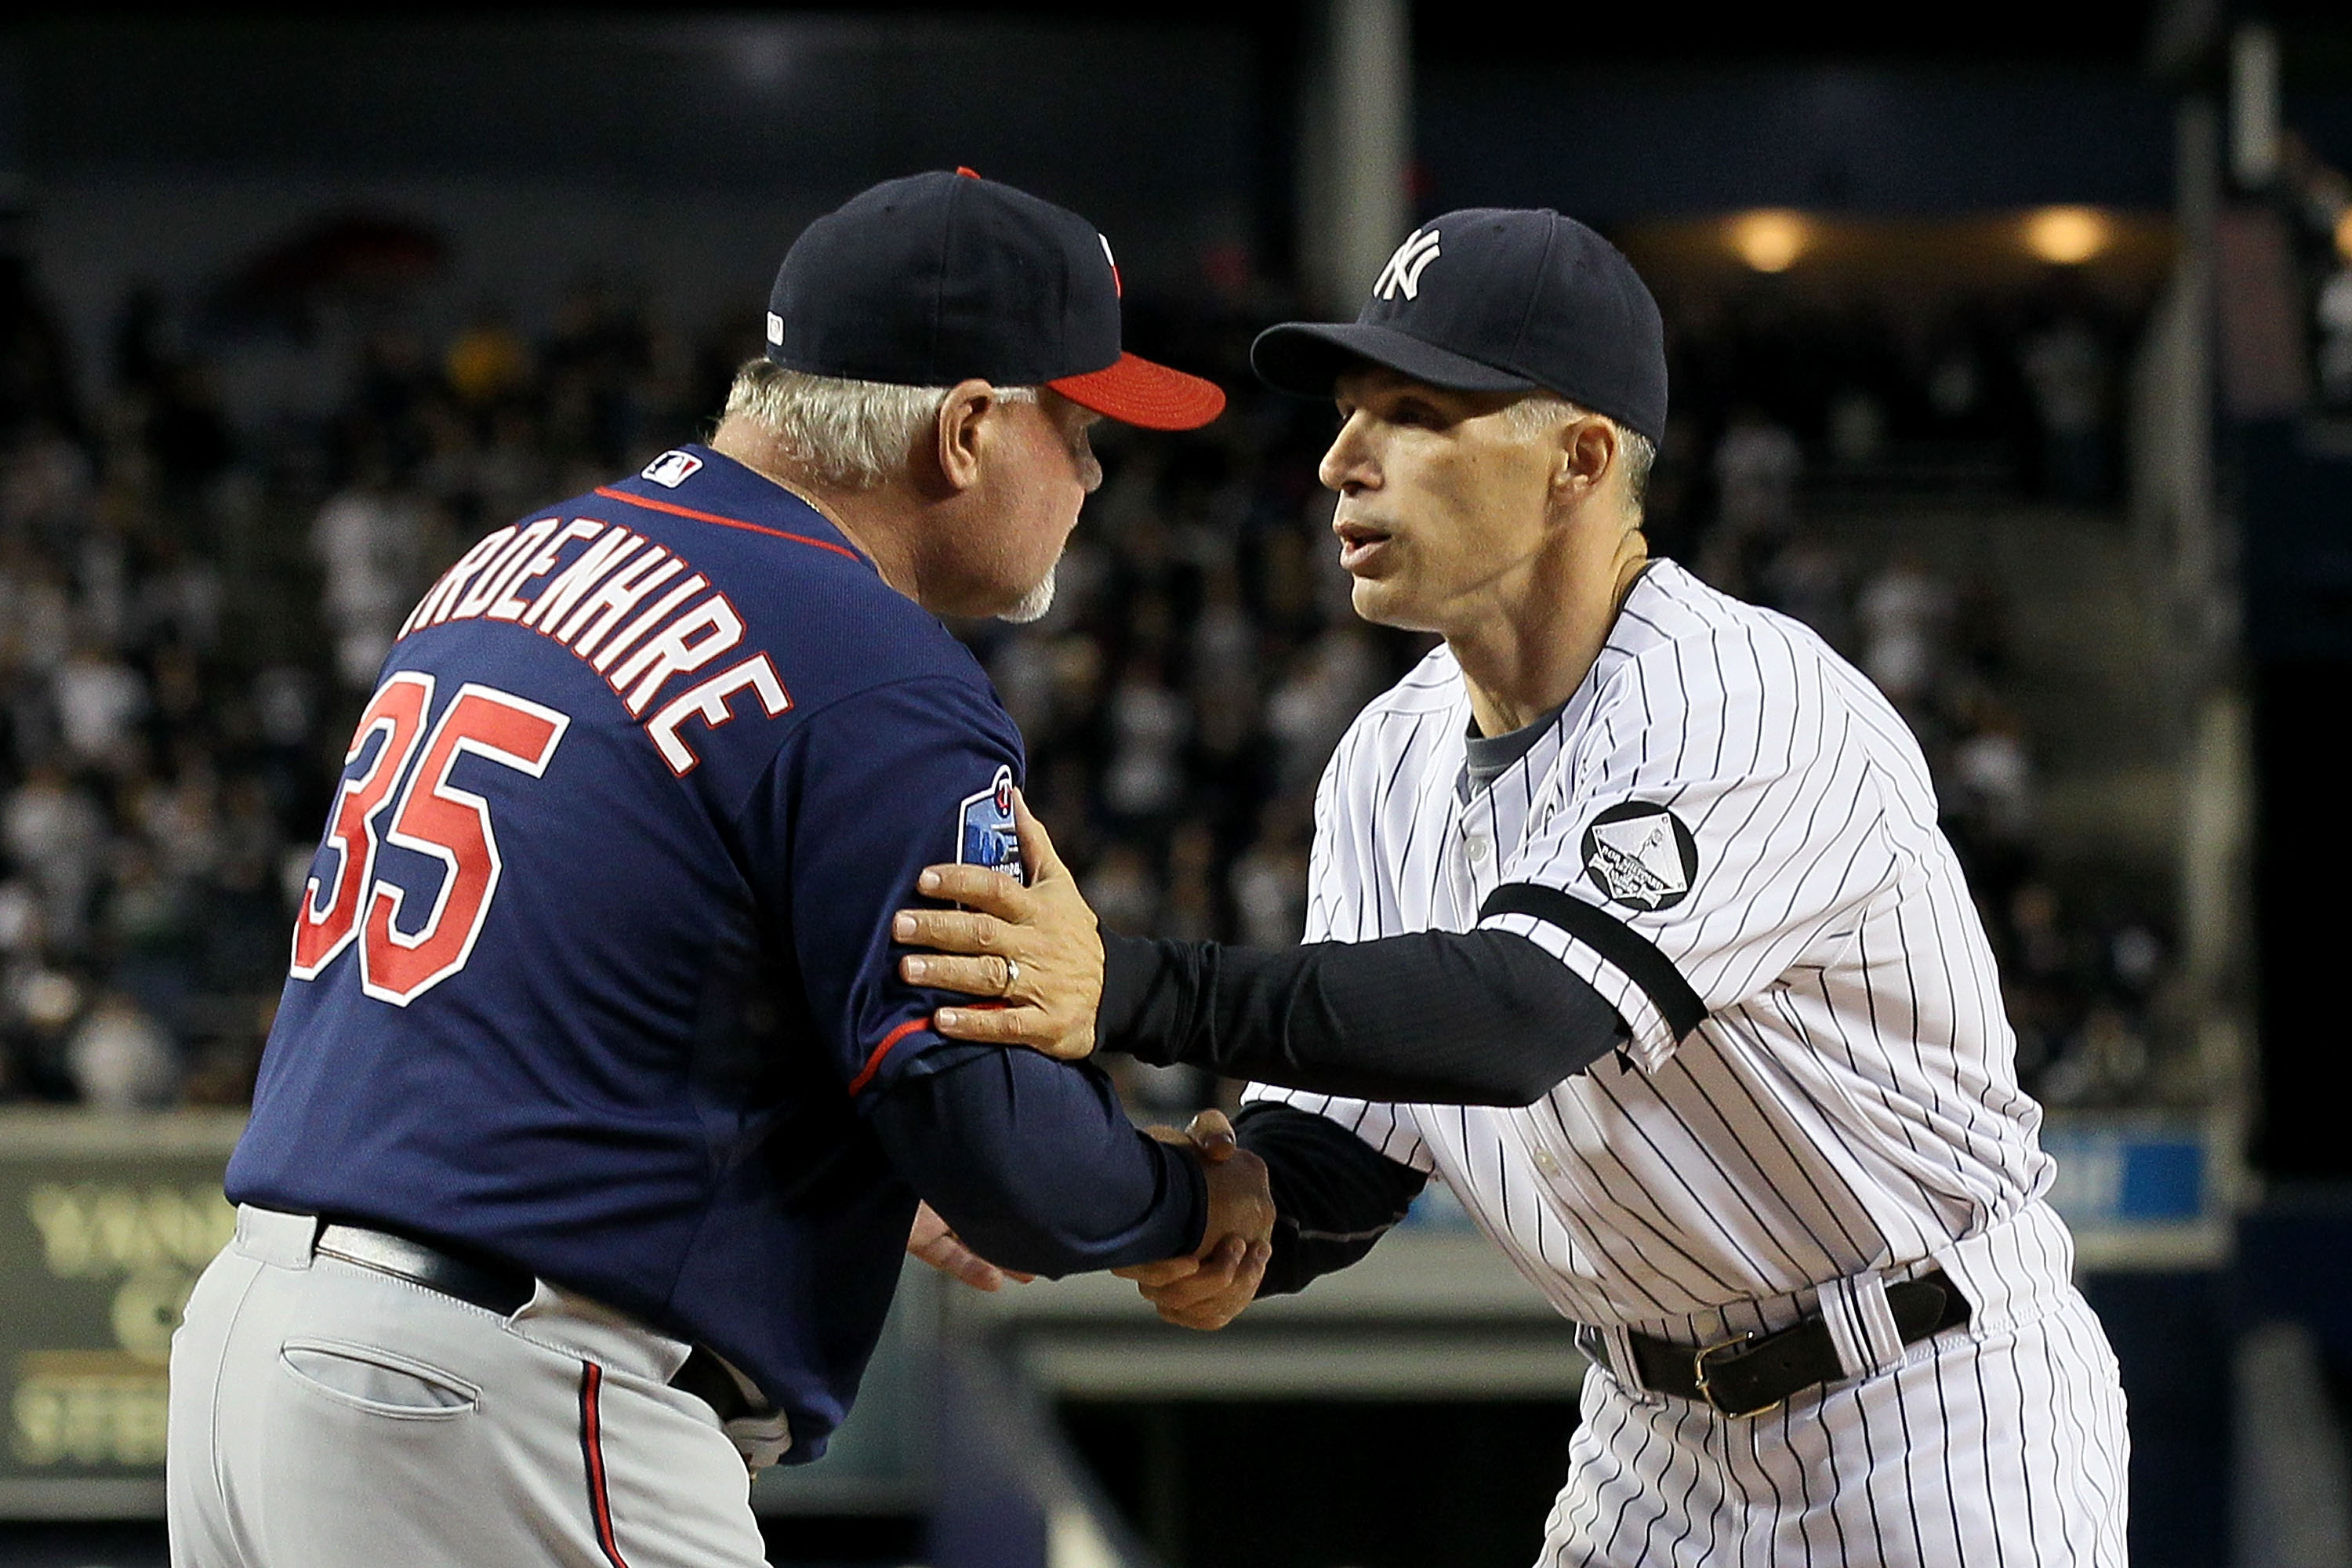 NEW YORK - OCTOBER 09:  Manager Joe Girardi #28 (R) of the New York Yankees greets manager Ron Gardenhire #35 of the Minnesota Twins prior to Game Three of the ALDS part of the 2010 MLB Playoffs at Yankee Stadium on October 9, 2010 in the Bronx borough of